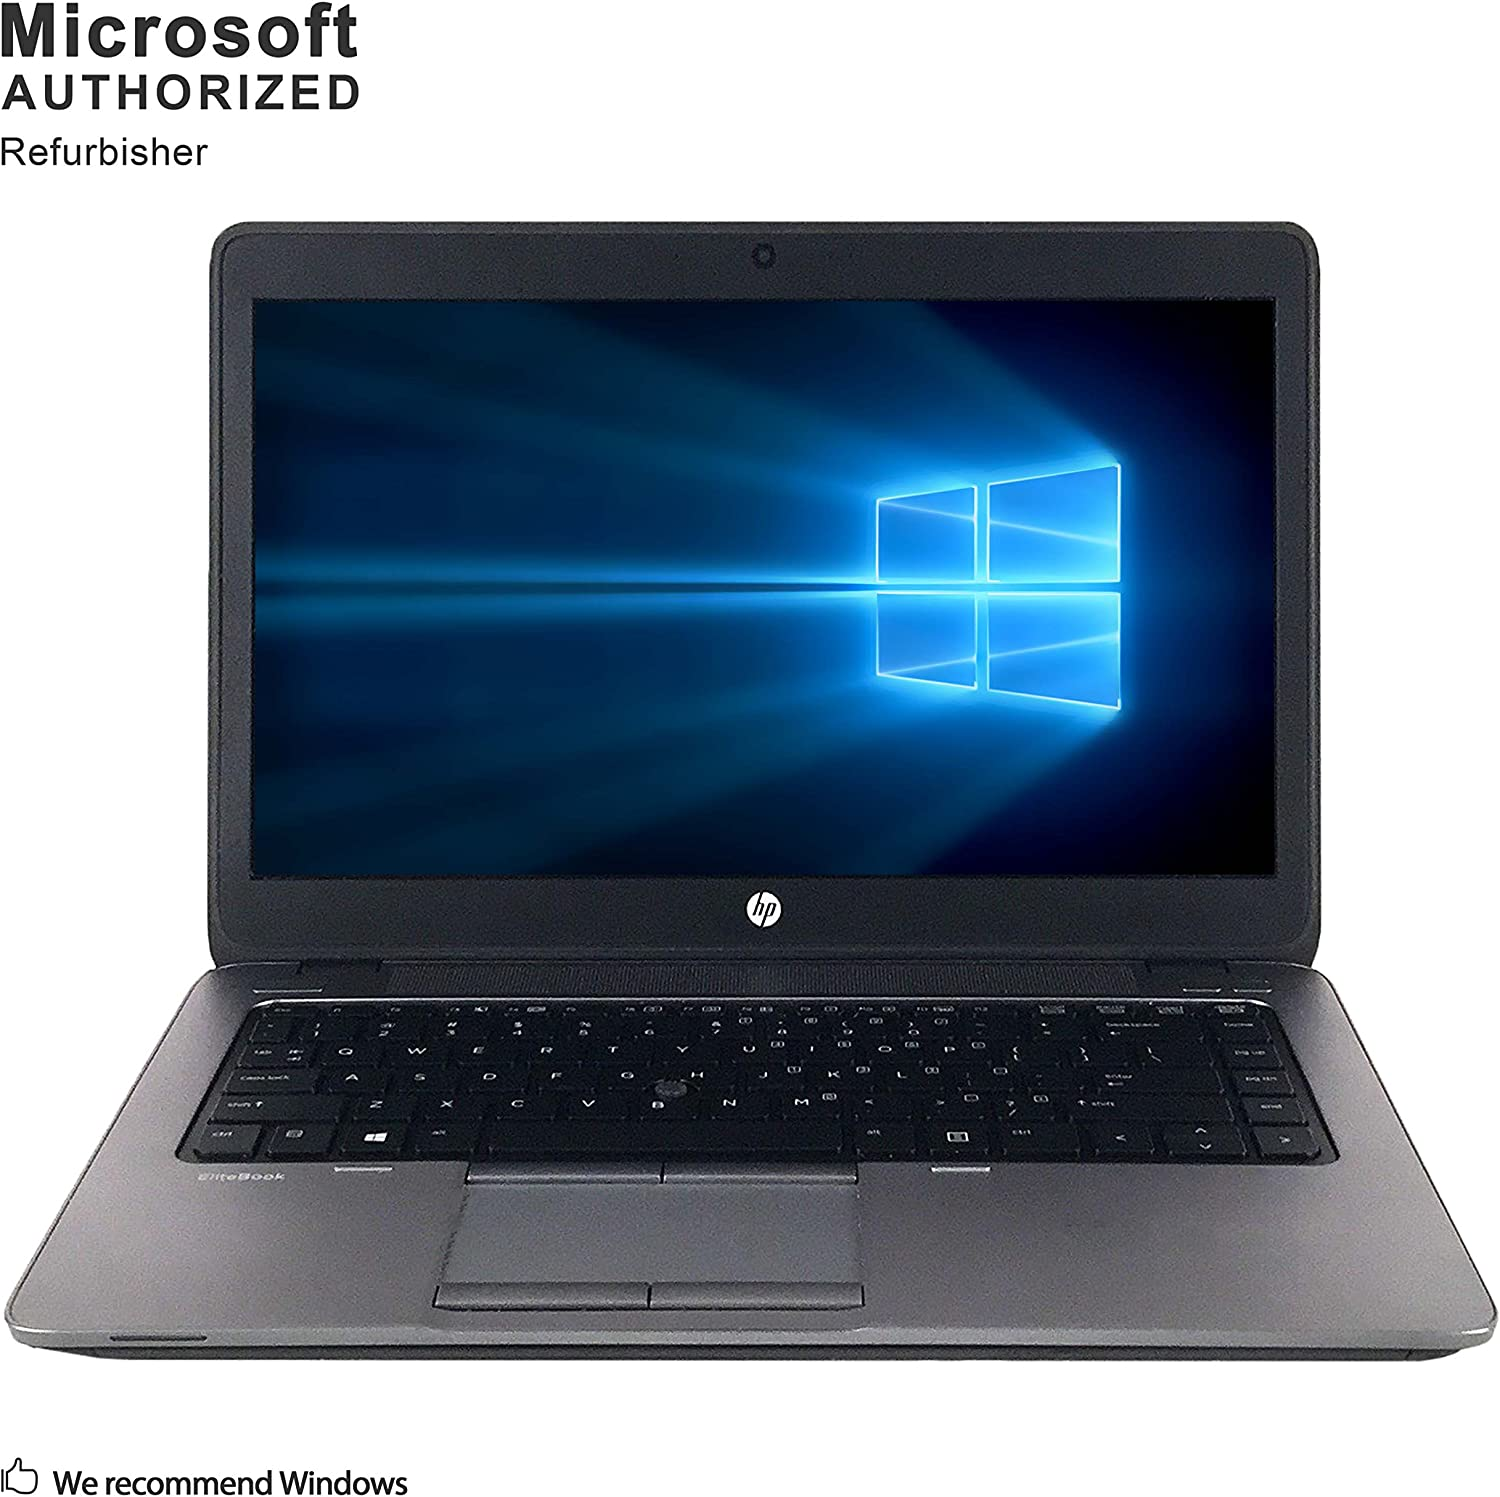 HP EliteBook 840 G2 14 Inch Business Laptop, Intel Core i7-5600U up to 3.2GHz, 8G DDR3L, 500G, WiFi, USB 3.0, Display Port, Windows 10 64 Bit Multi-Language Supports En/Fr/Sp(Renewed)